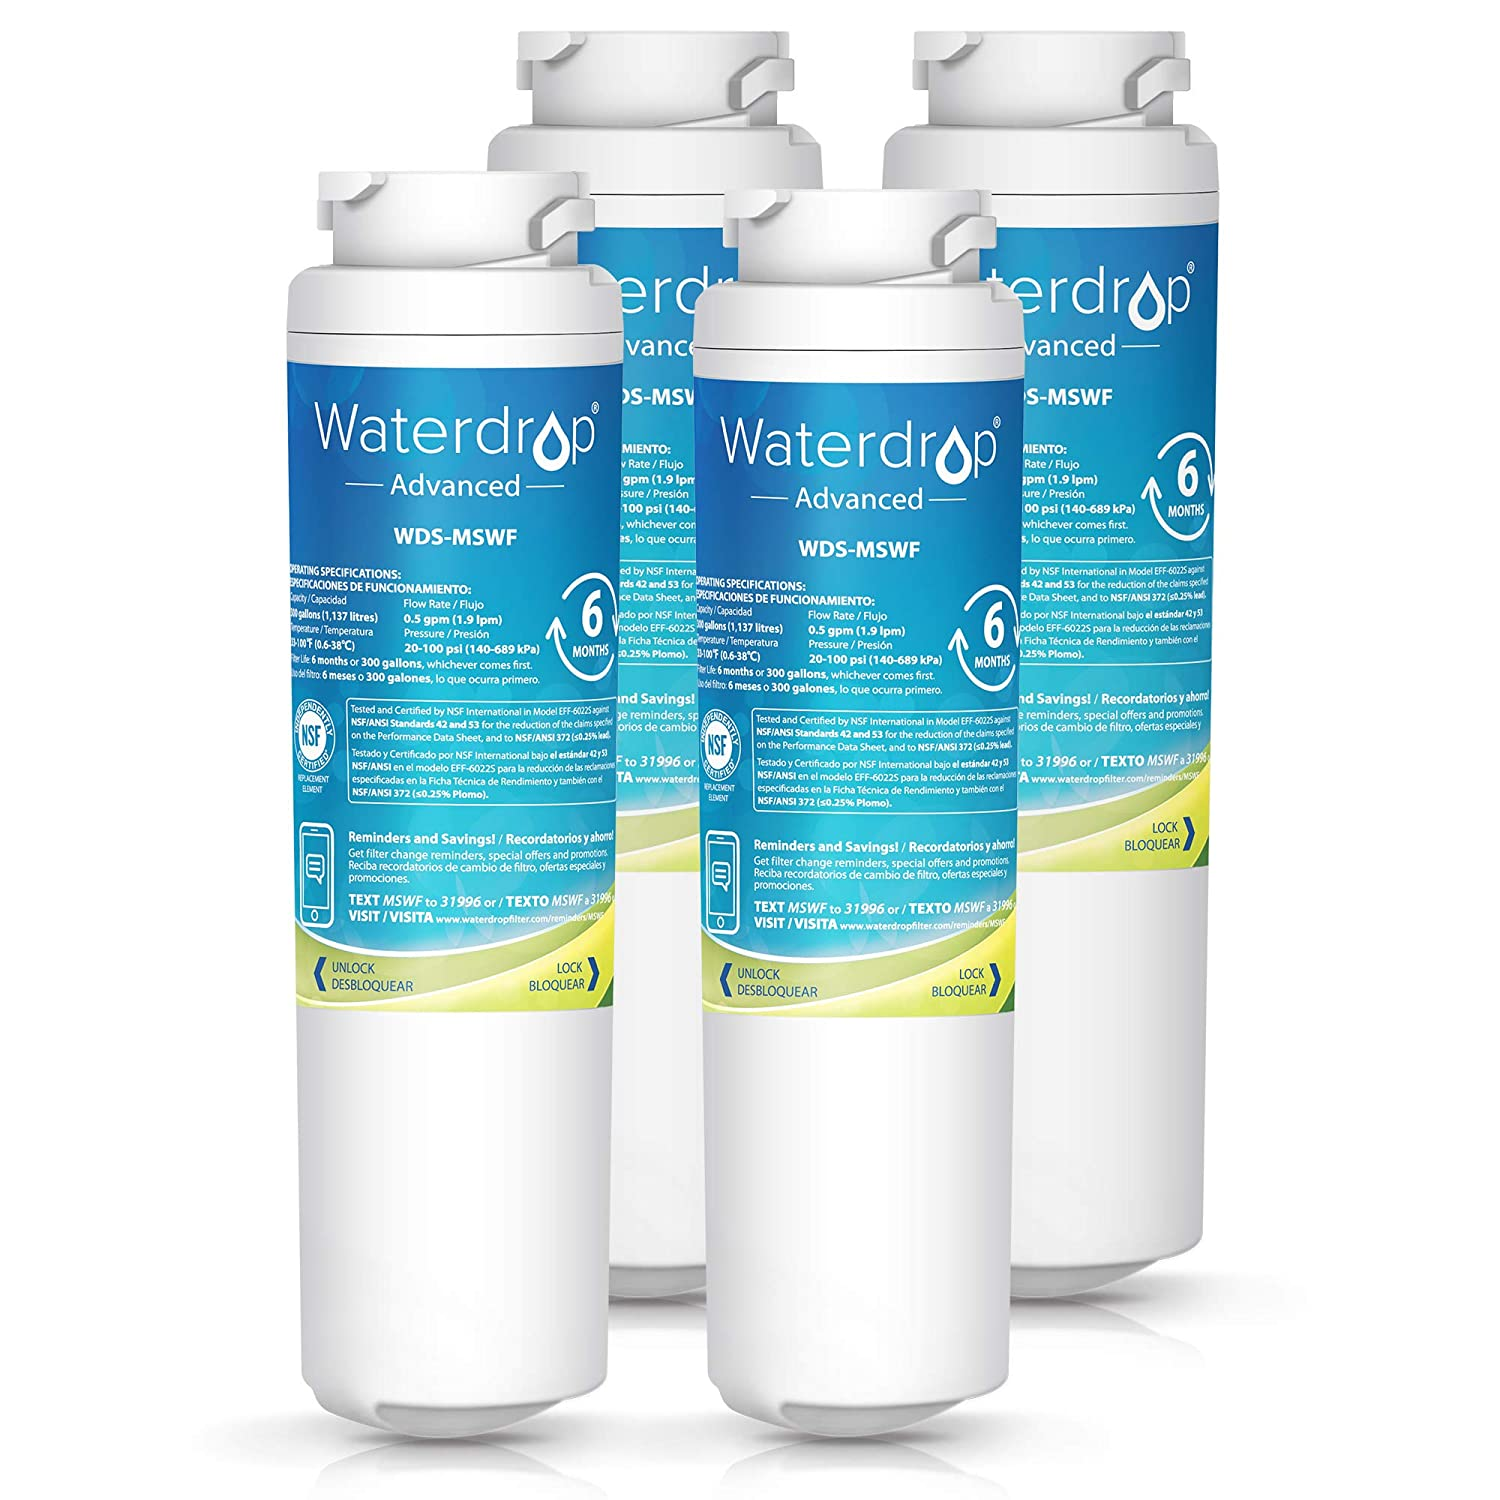 Waterdrop Refrigerator Water Filter -Compatible with GE MSWF, 101820A, 101821B, 101821-B -NSF 53&42 Certified Reduces Lead, Cyst and More, Pack of 4